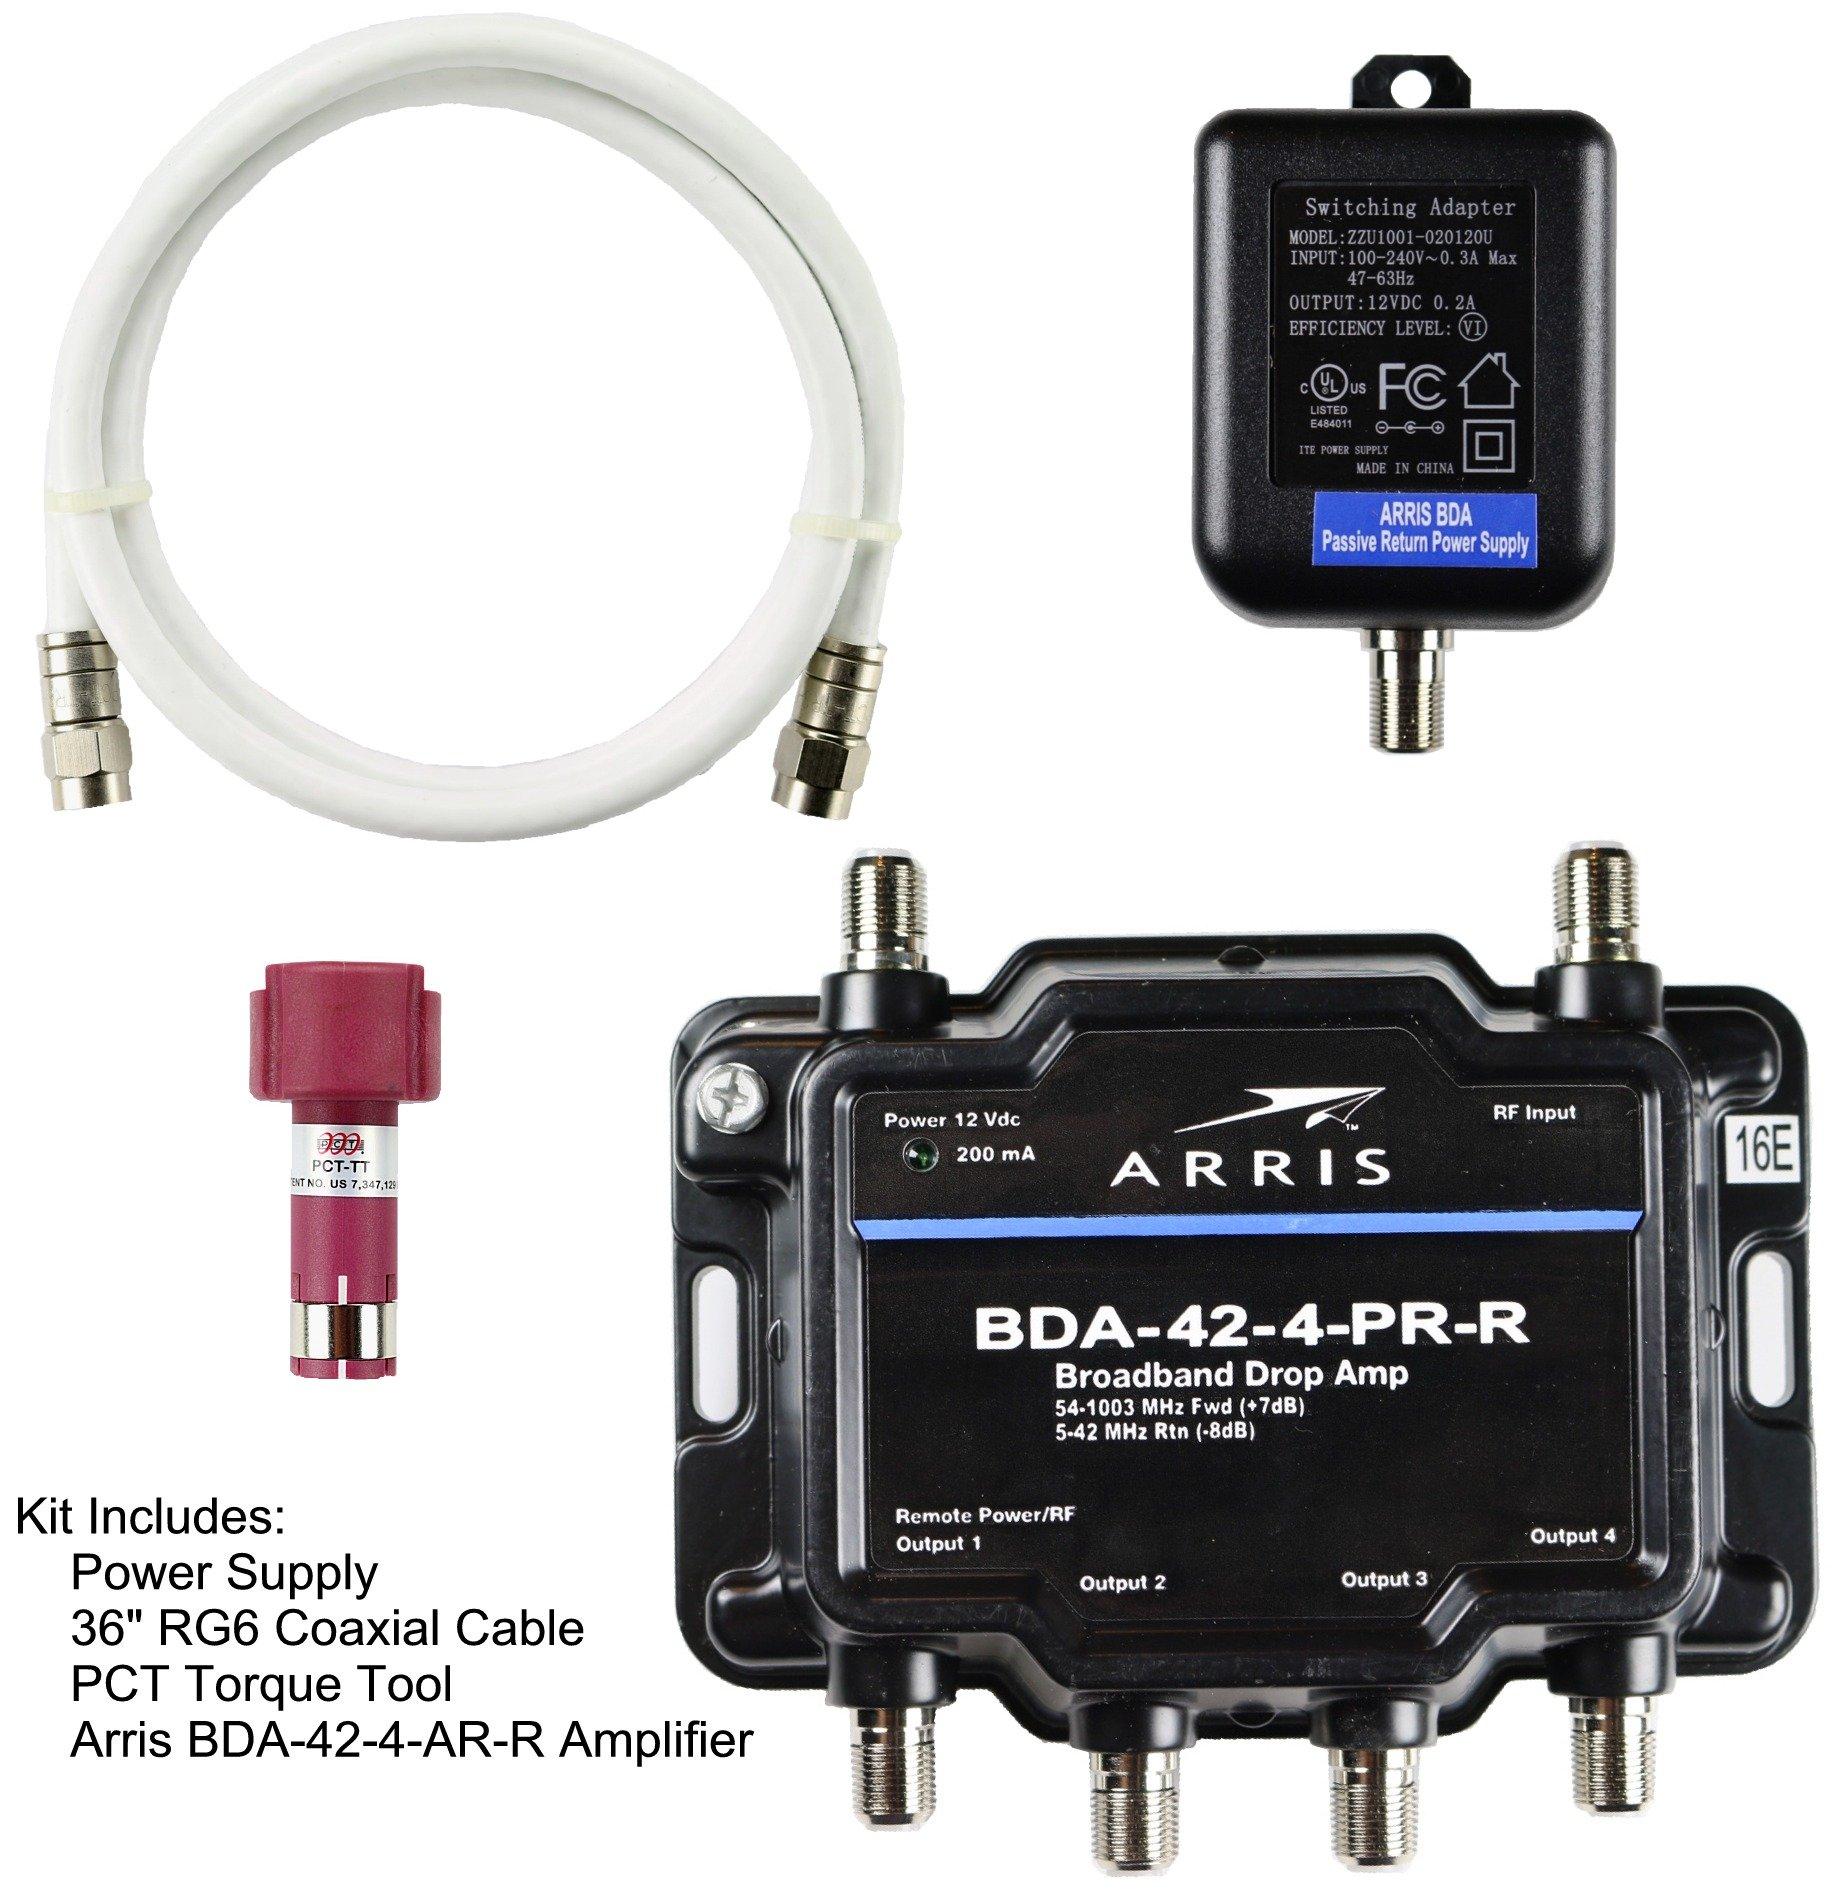 Arris 4-Port Bi-Directional Cable TV, OTA, Satellite HDTV Amplifier Splitter Signal Booster with Passive Return And Coax Cable Package - cableTVamps®  by cableTVamps